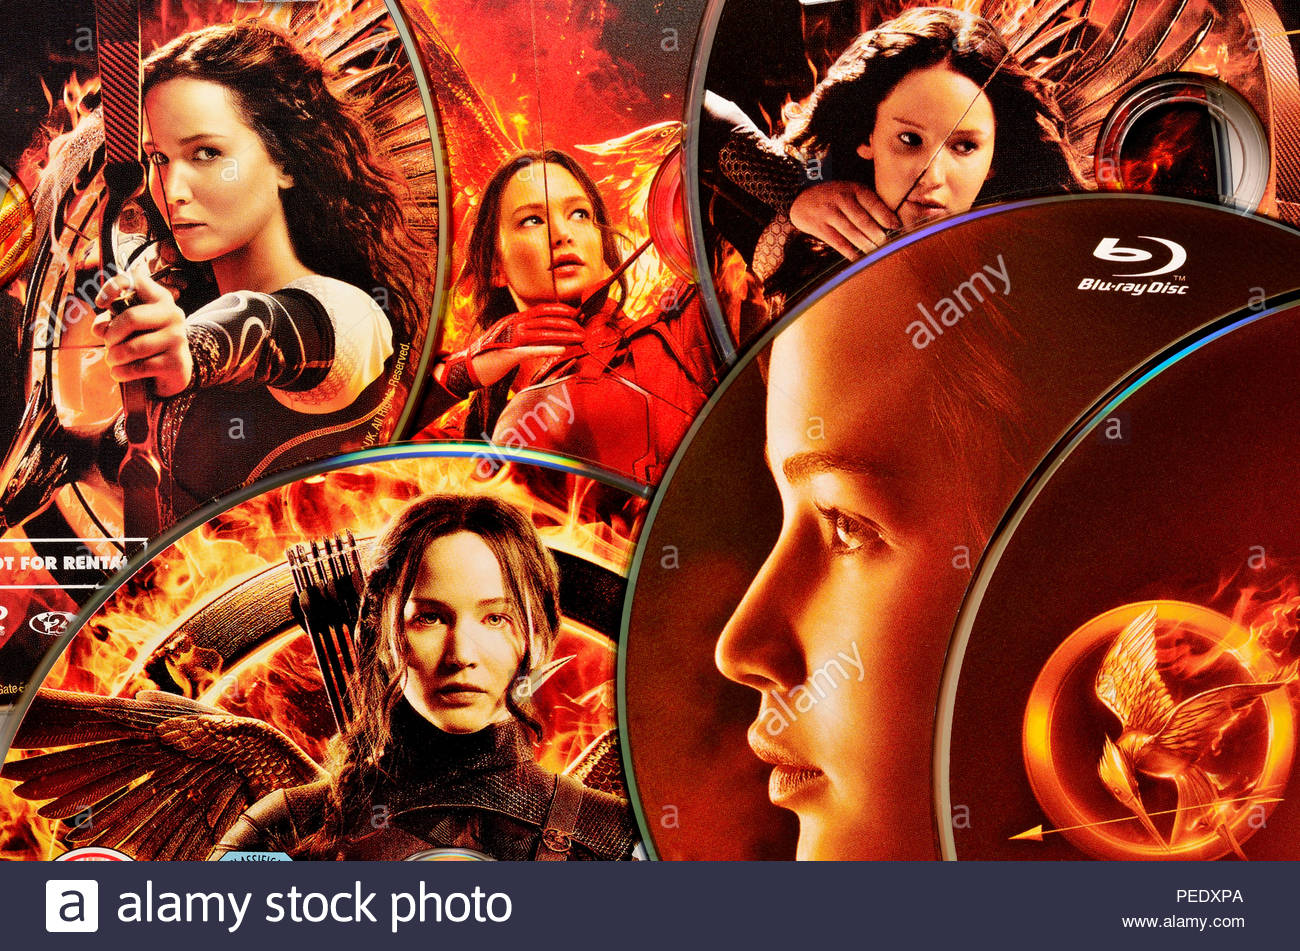 Hunger Games films on DVD - Stock Image